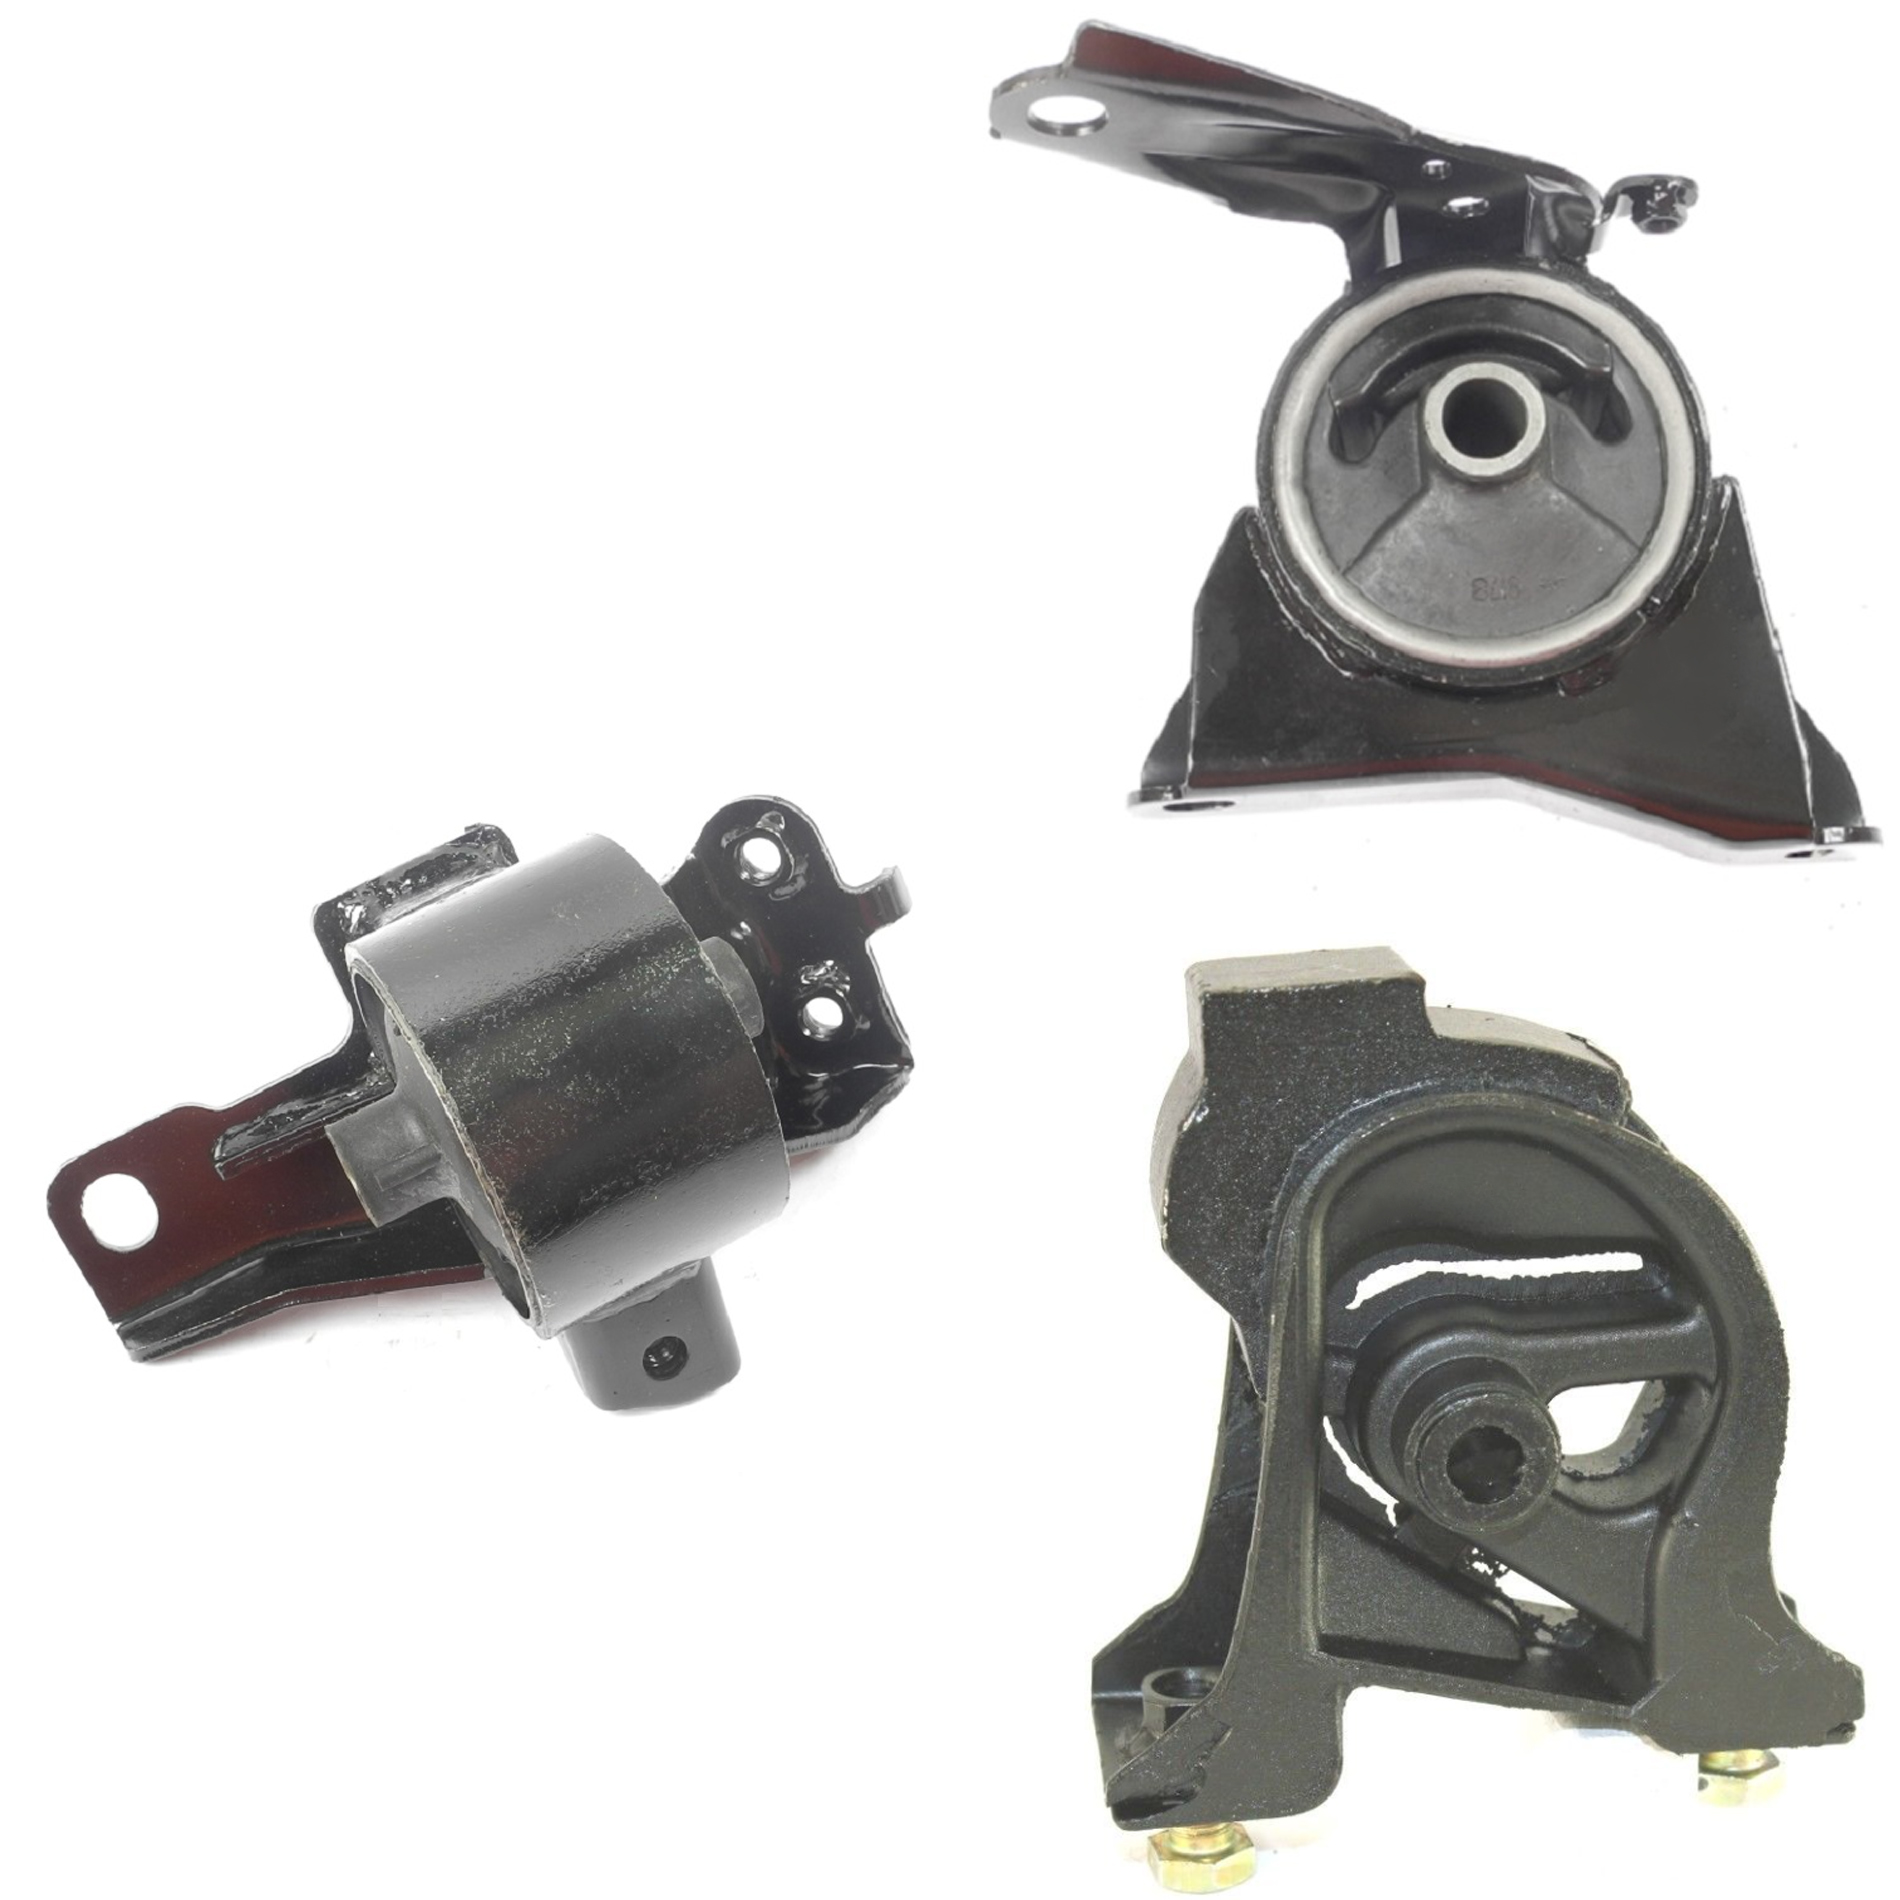 hight resolution of cf advance for 93 97 geo prizm 1 6l fwd engine motor transmission mount manual set 3pcs 1993 1994 1995 1996 1997 walmart com